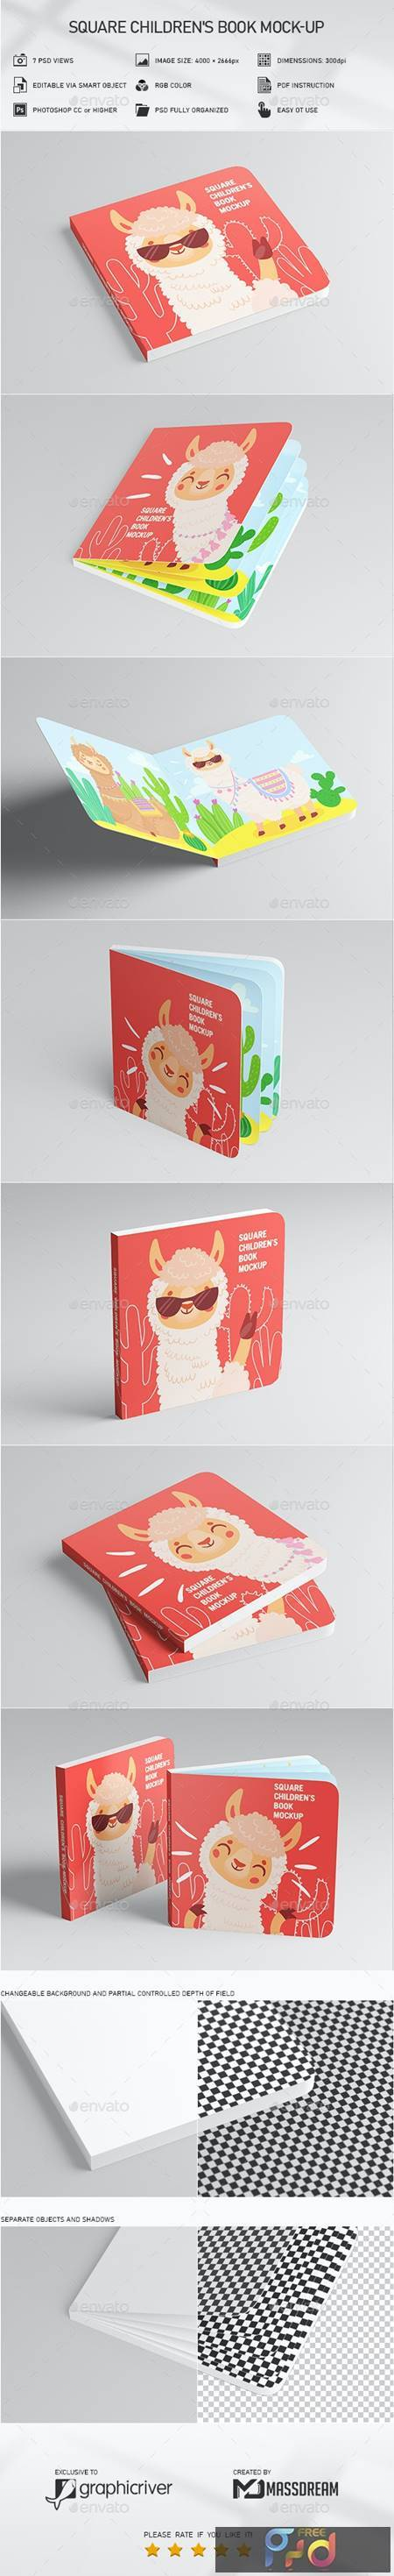 Square Childrens Book Mock-Up 29436553 1